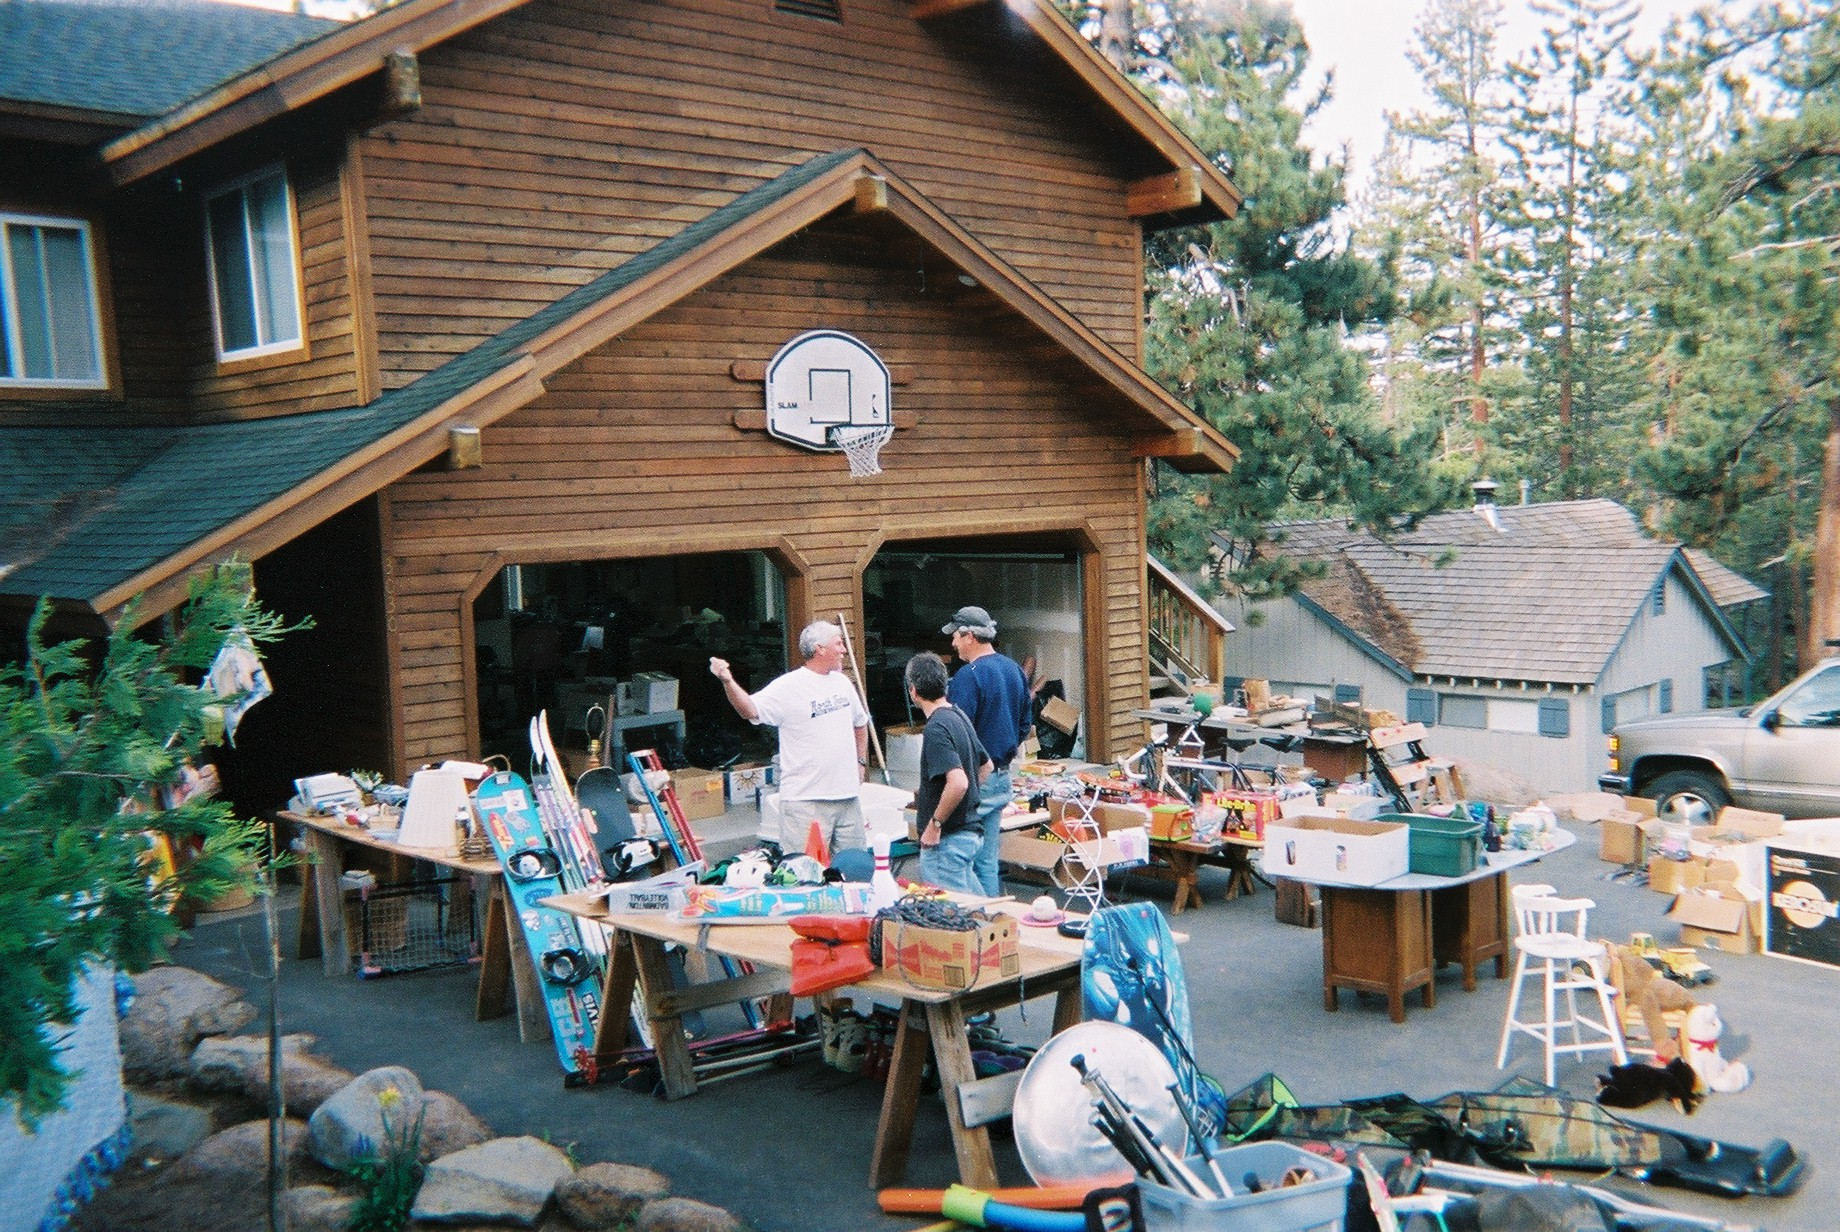 city of stayton offers garage sale advertising online free of